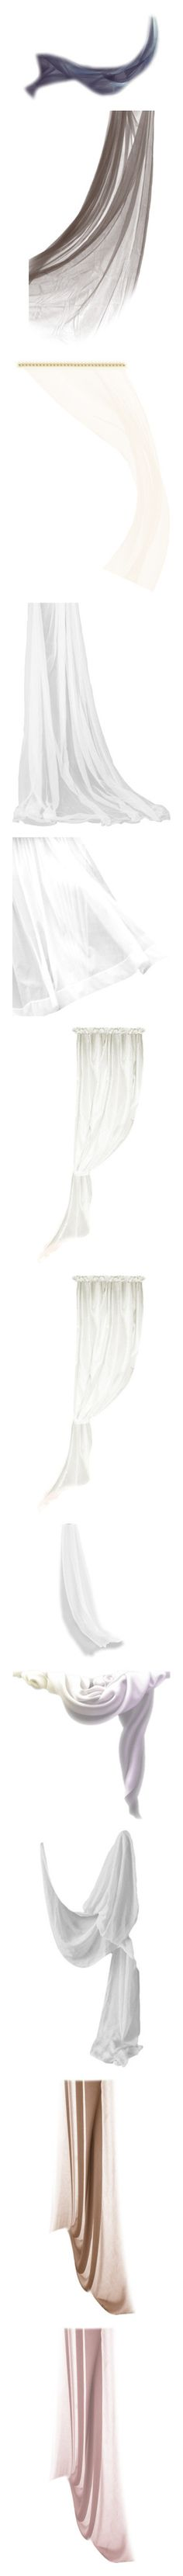 """Curtains w/ movement"" by quicherz ❤ liked on Polyvore featuring cloth, fabric, curtains, flutters, tubes, effects, windows, cortinas, misc and filler"